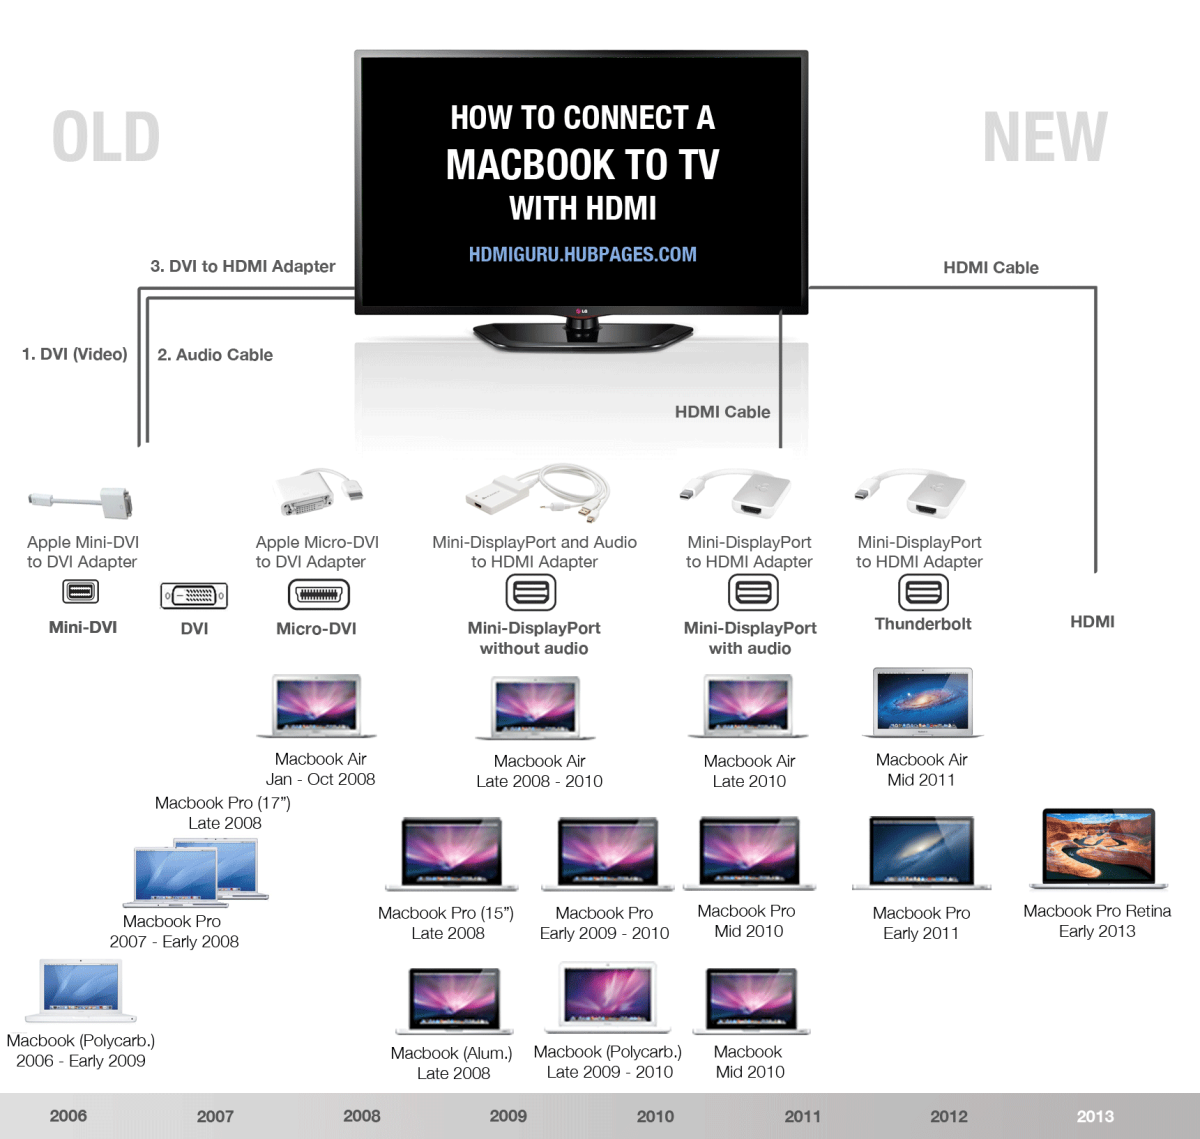 Macbook to TV Infographic: See which adapter is needed for which model